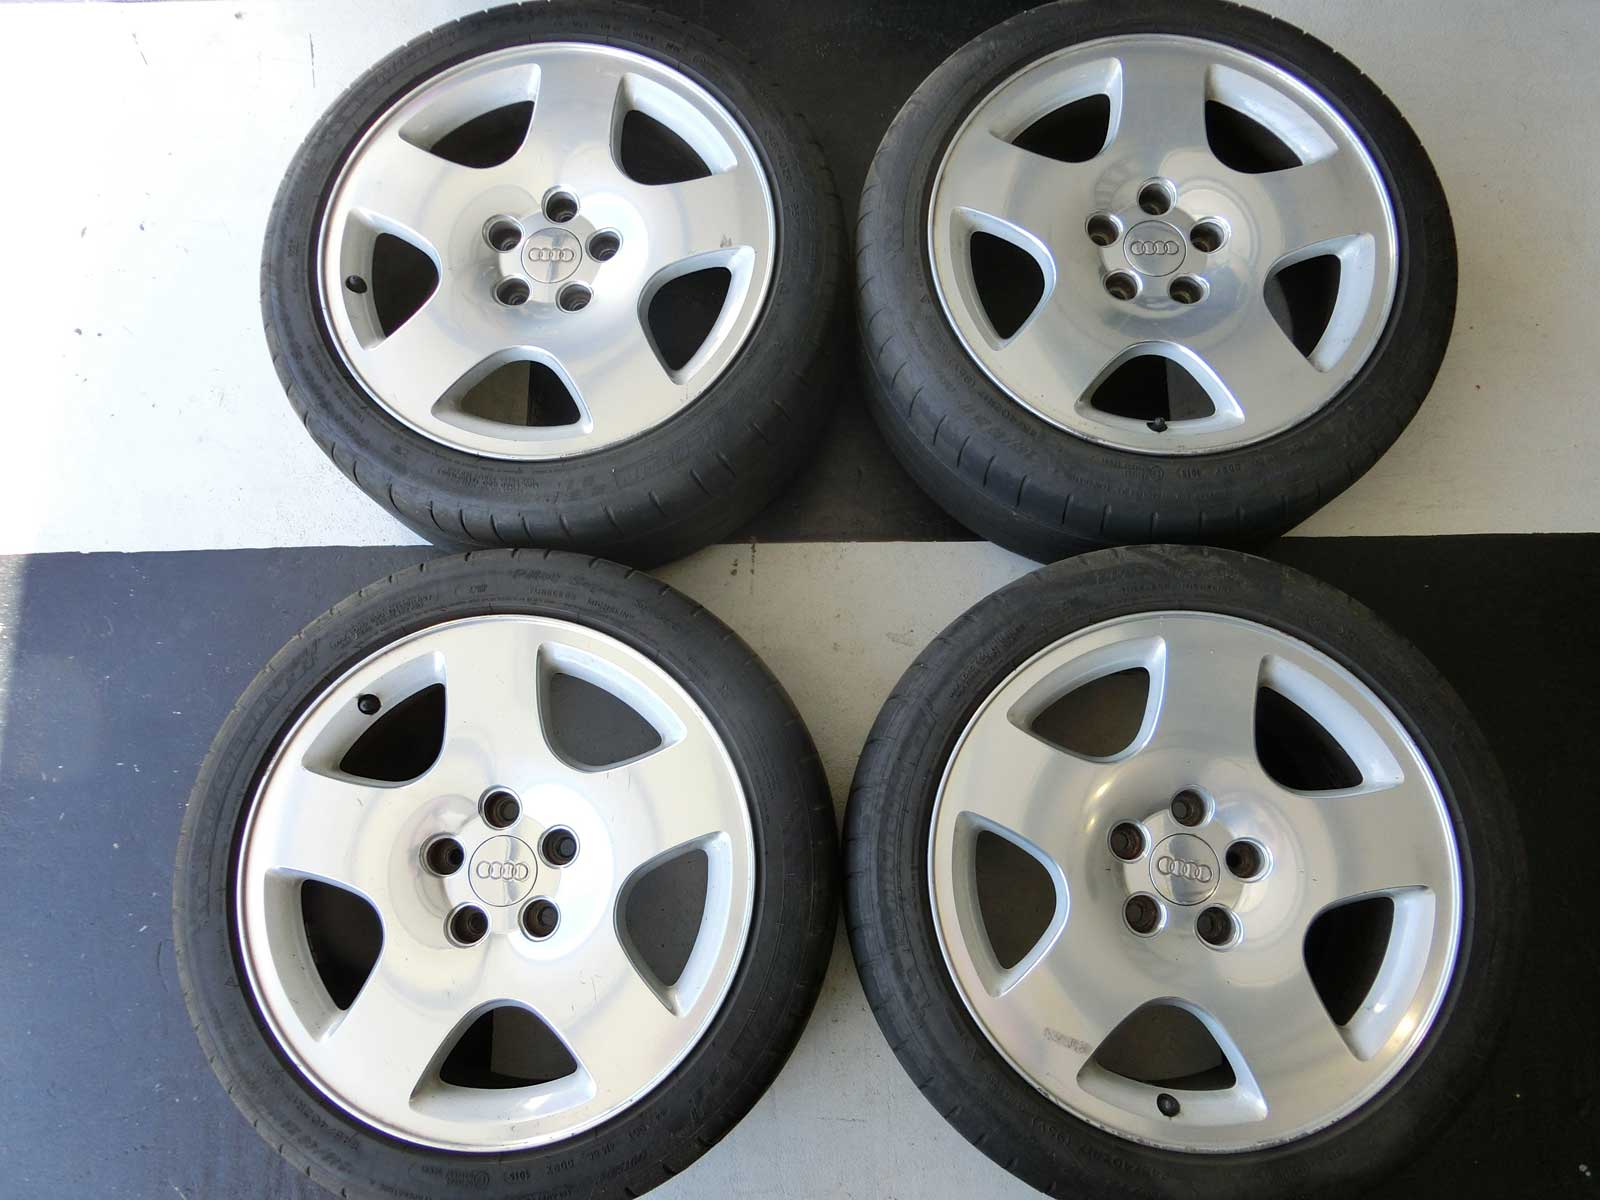 audi inlays used up alloy display vorsprung head bitdi roof cars wheels in panoramic tiptronic classifieds for west sale pistonheads quattro carbon yorkshire